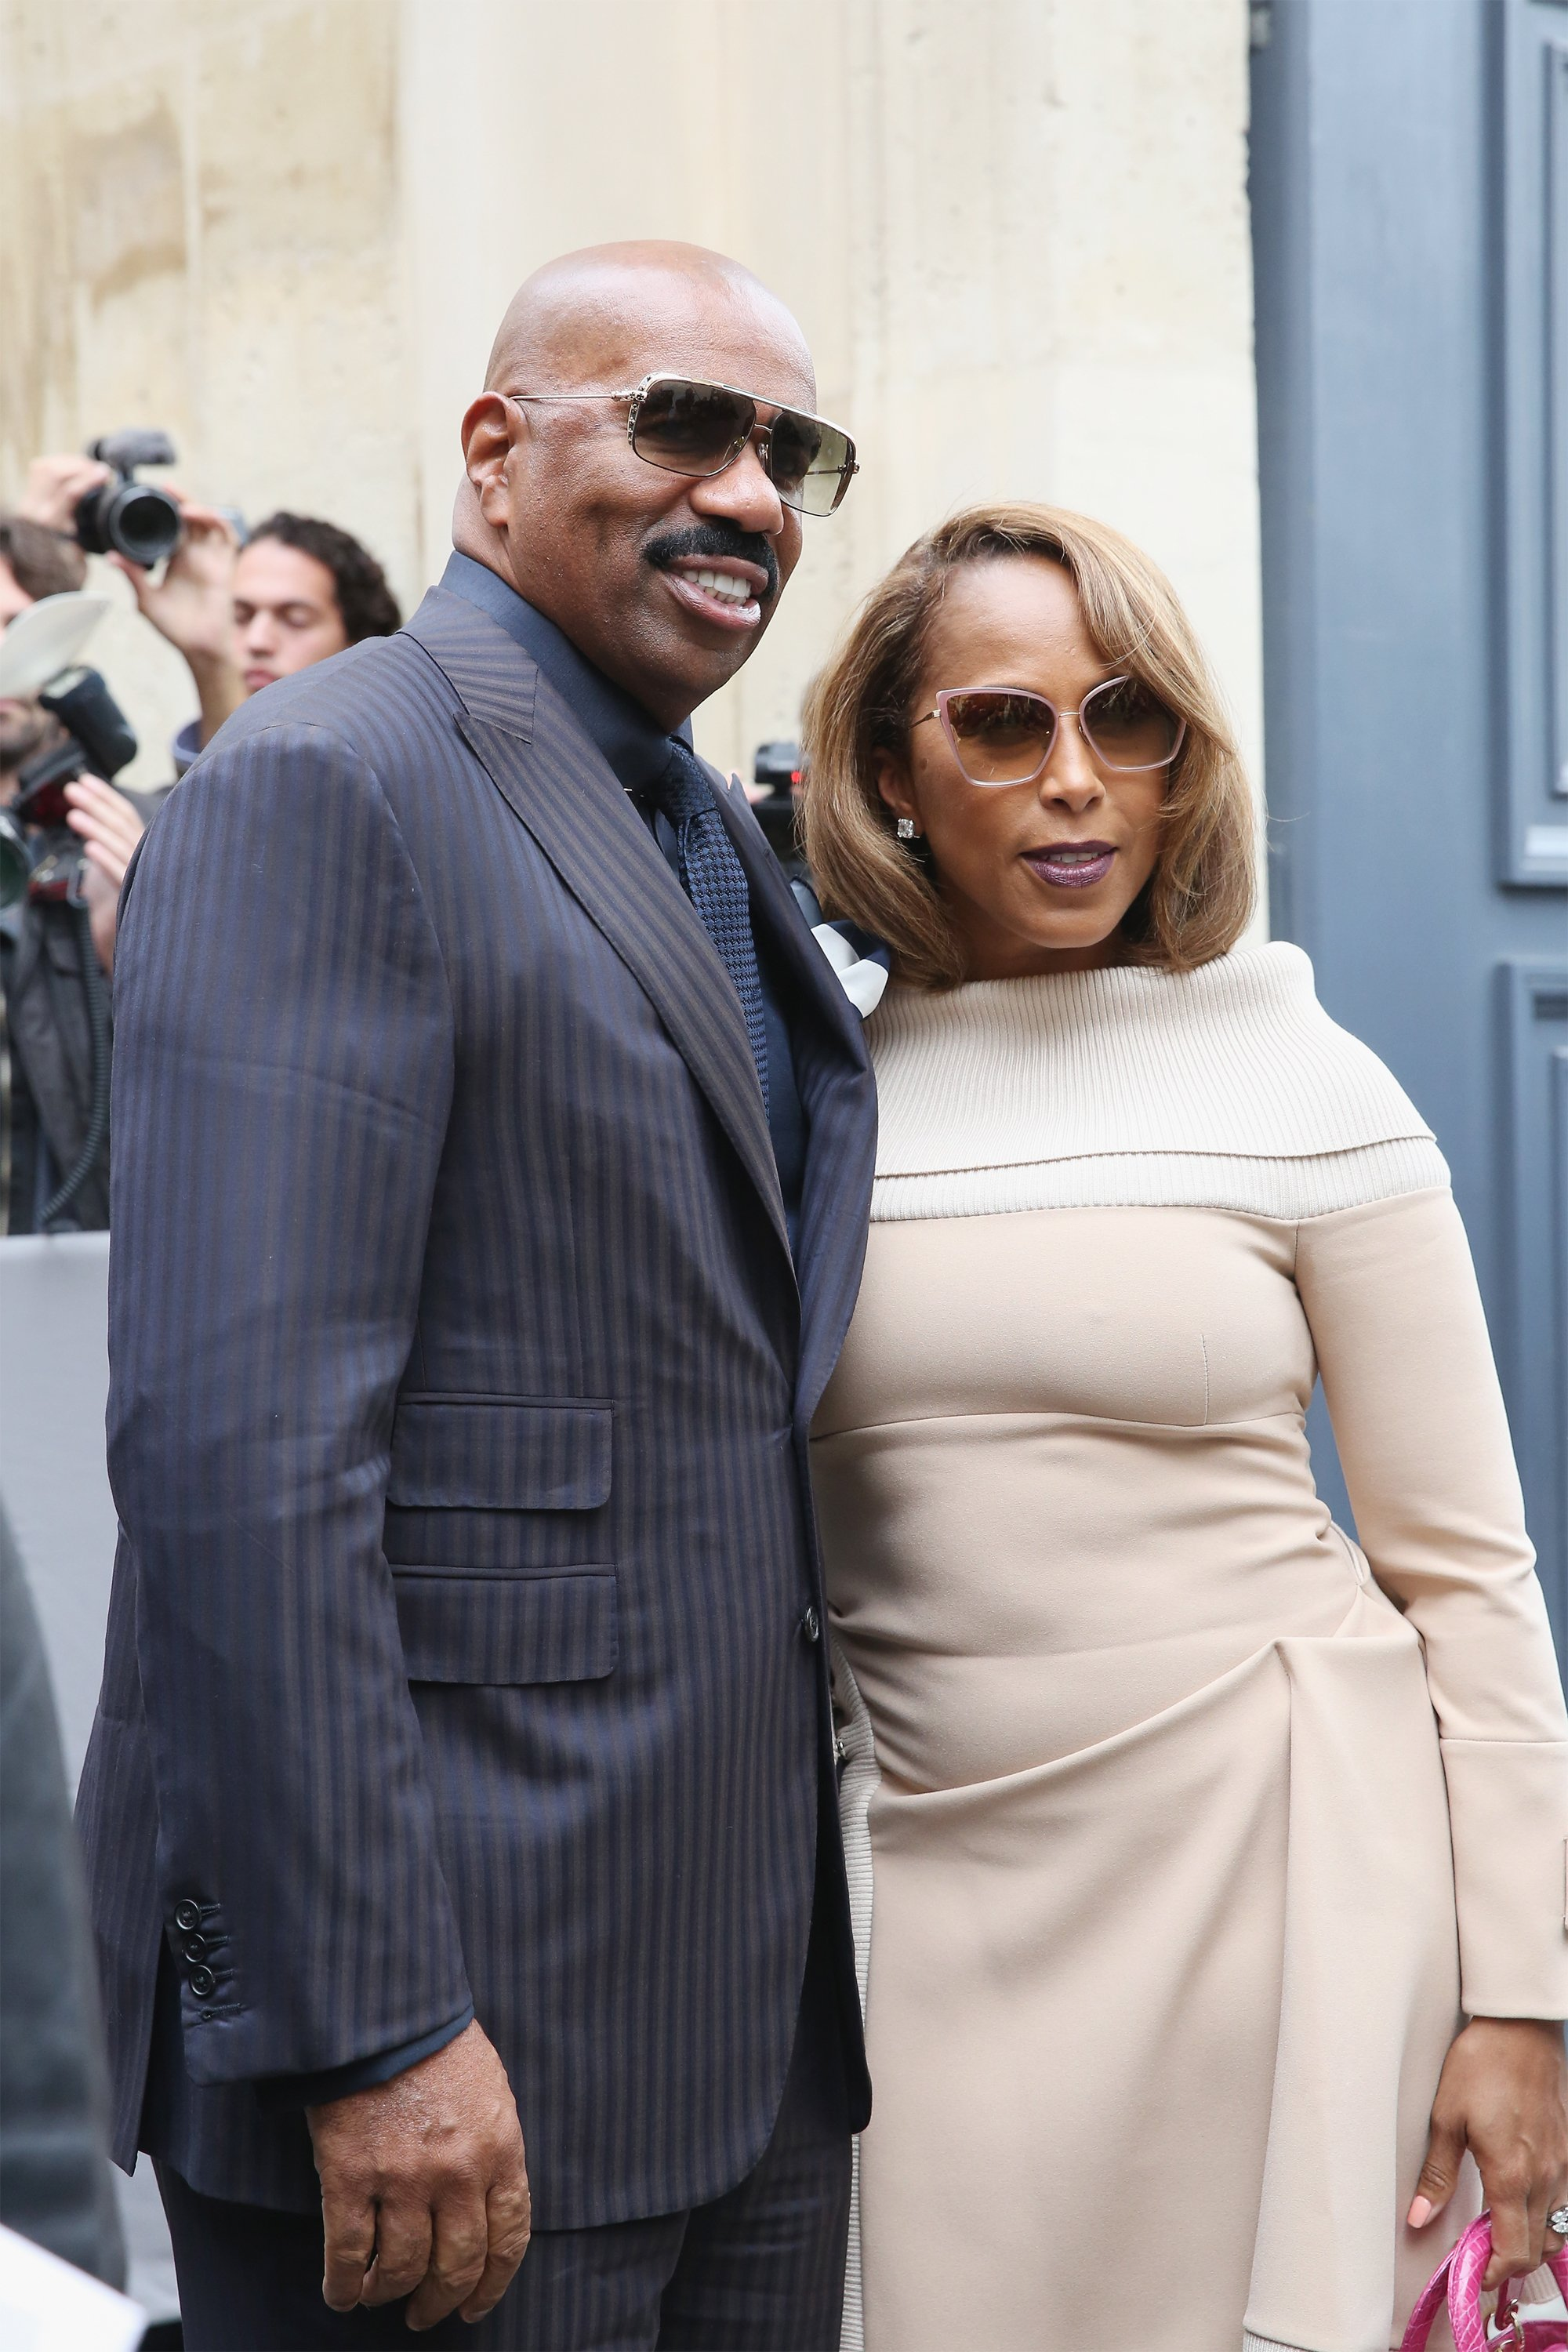 Steve Harvey and Marjorie Harvey attend the Christian Dior show on September 30, 2016 in Paris, France | Photo: Getty Images